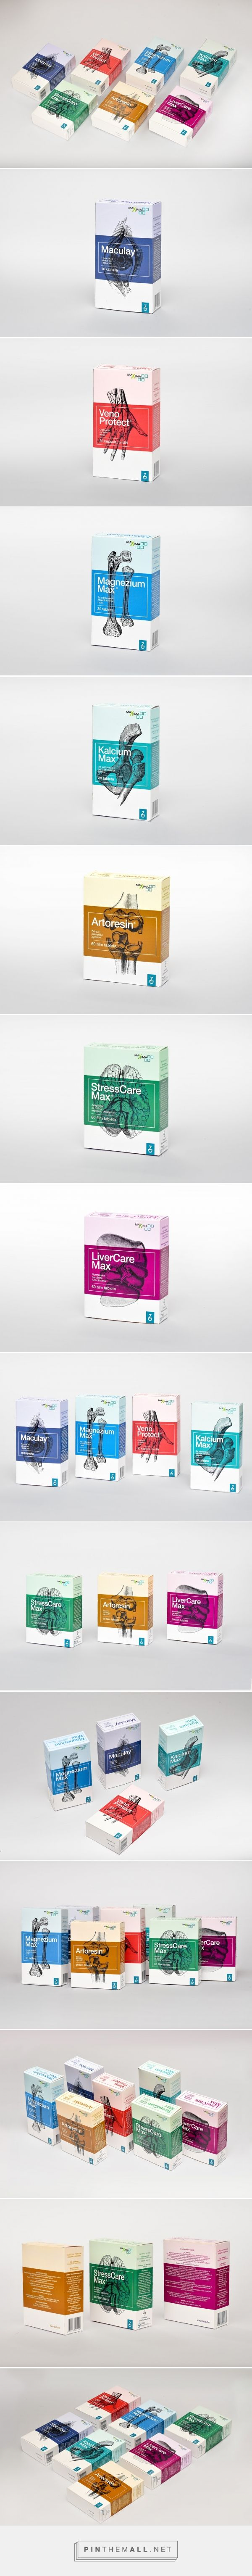 Zada Food Supplements / Medicine Packaging (Concept) - Packaging of the World - Creative Package Design Gallery - http://www.packagingoftheworld.com/2017/01/zada-food-supplements-medicine.html